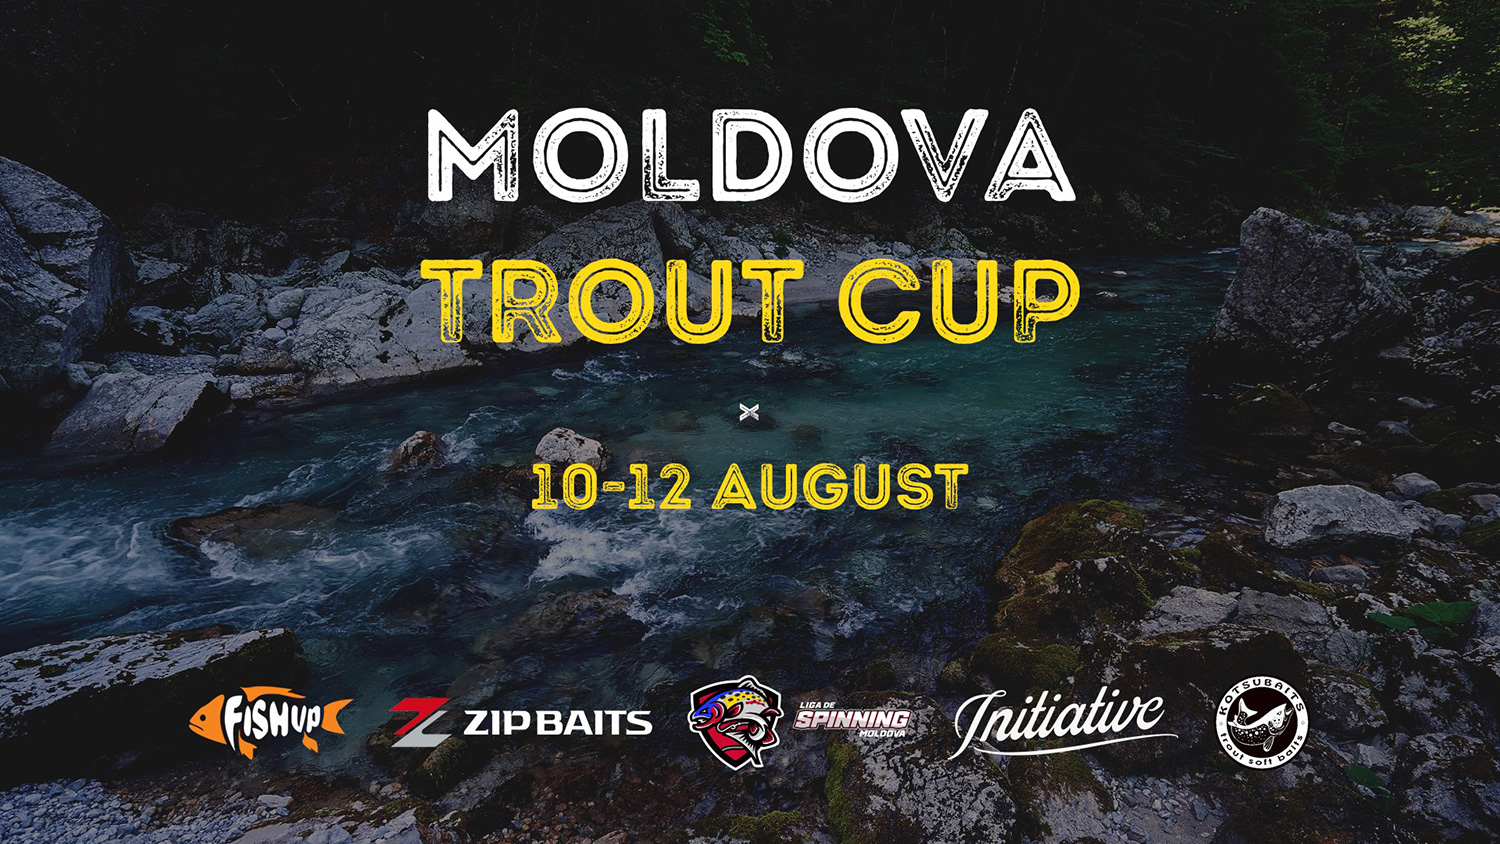 Moldova Trout Cup II